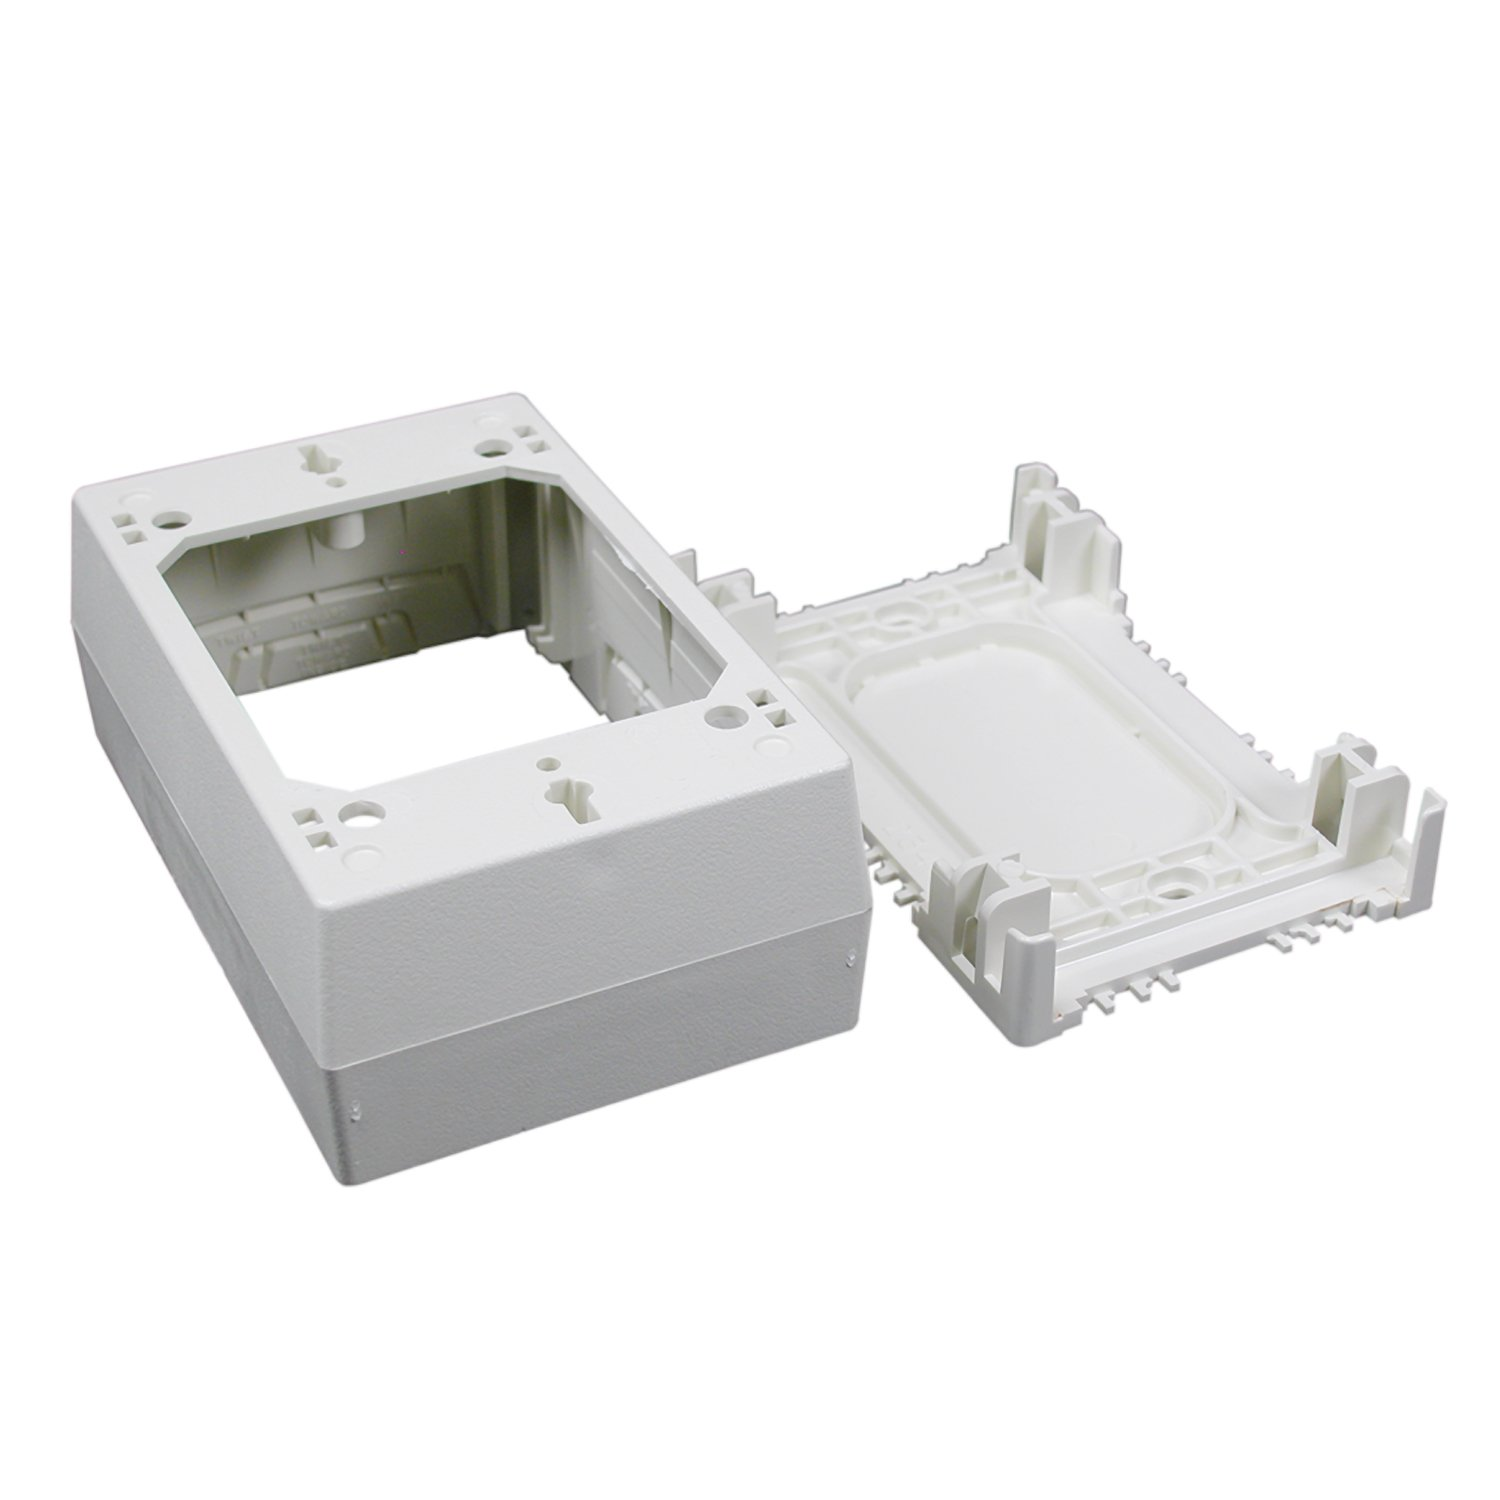 Legrand Wiremold NM35 Extra Deep Outlet Box